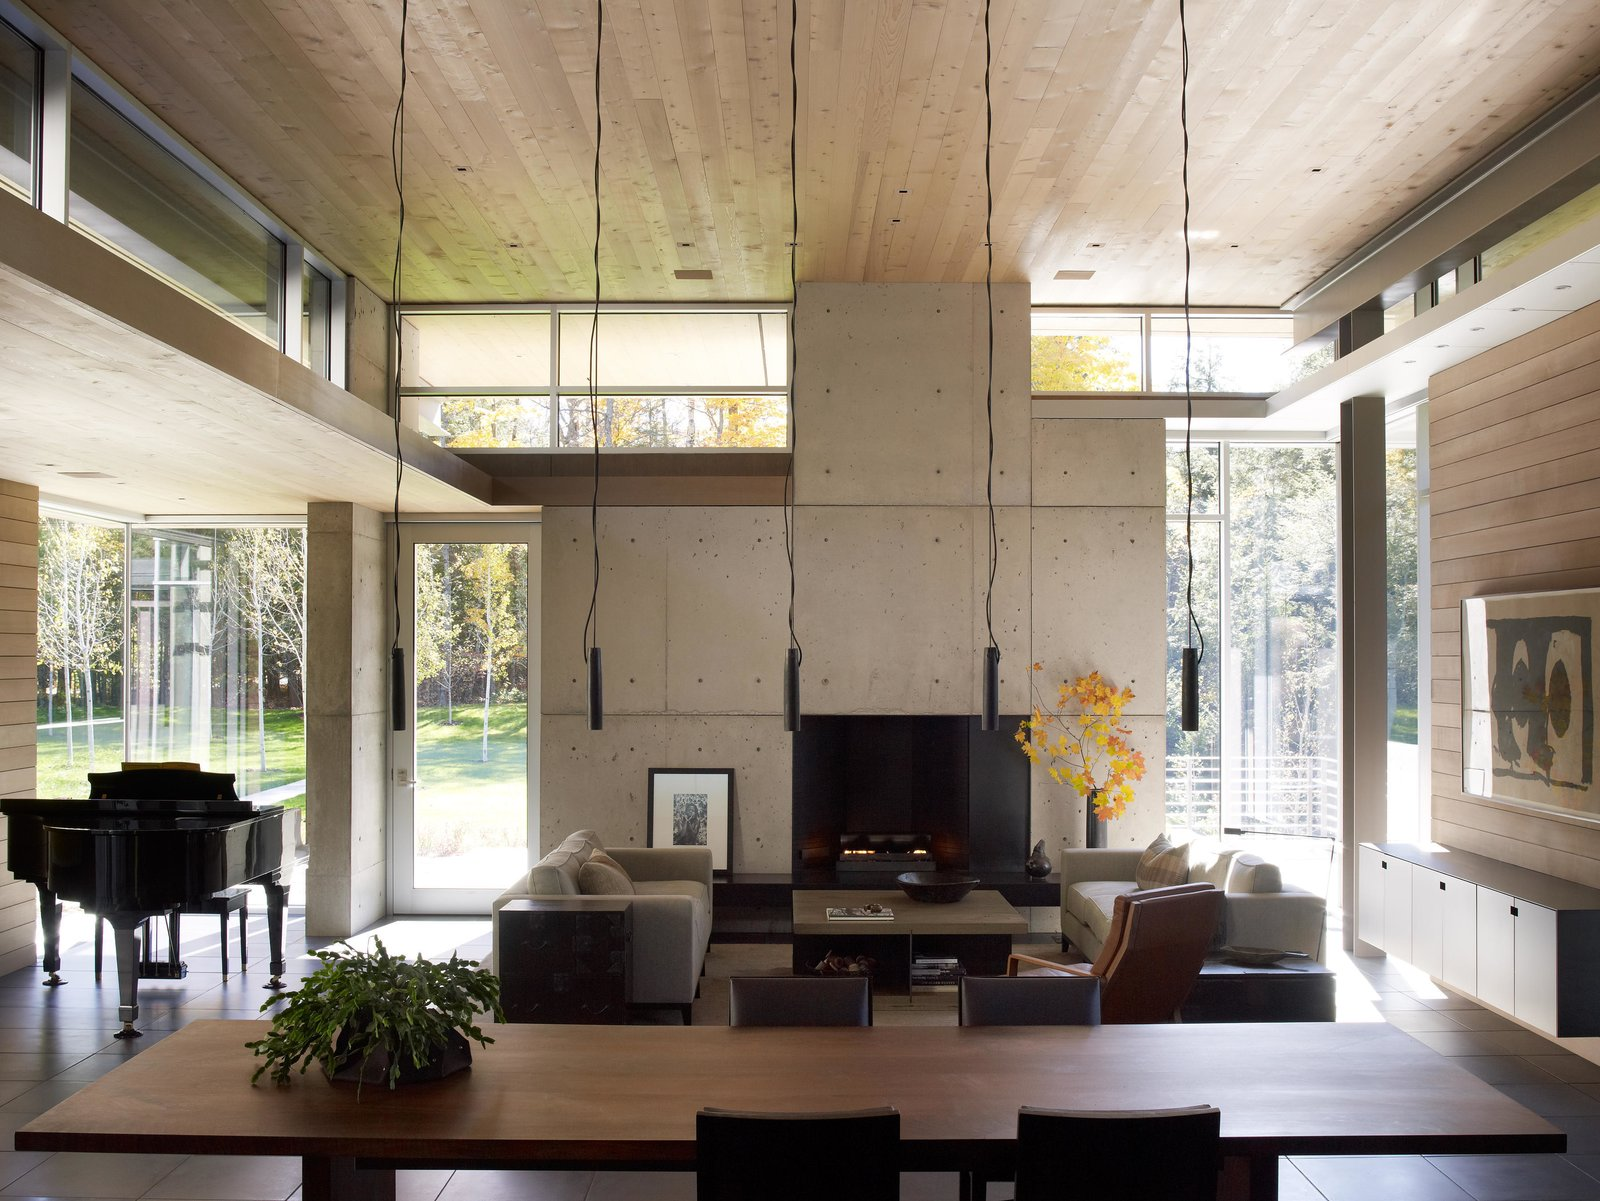 Exterior, Wood, Coffee Tables, Garden, Pendant Lighting, Ceiling Lighting, Sofa, Metal, and Living Room Northwoods House  Northwoods House by Olson Kundig